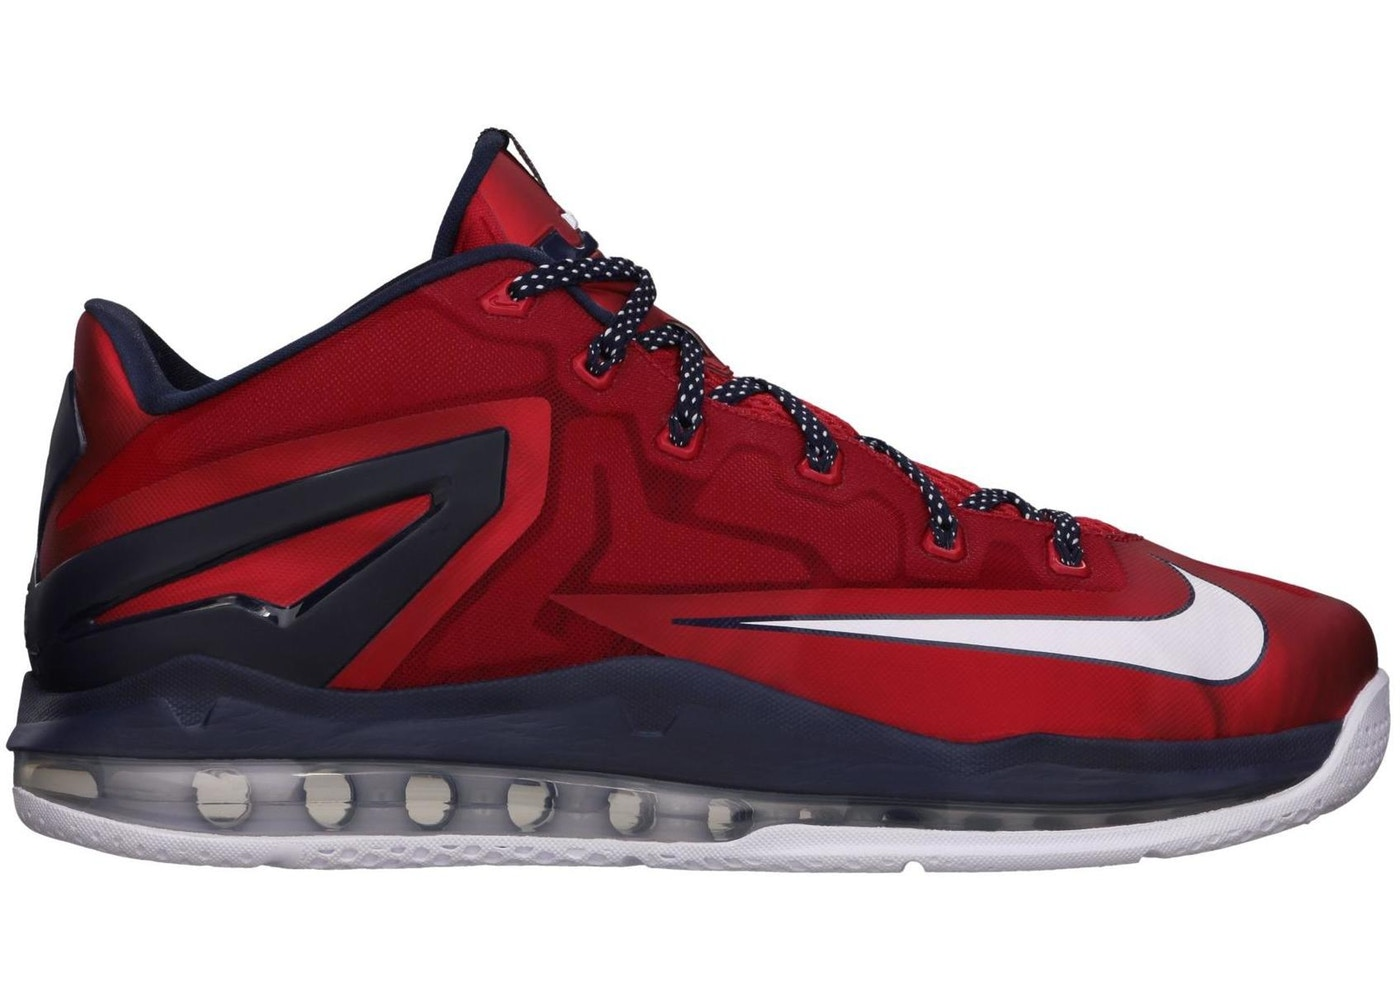 ナイキ NIKE レブロン スニーカー 【 LEBRON 11 LOW INDEPENDENCE DAY UNIVERSITY RED WHITEOBSIDIAN 】 メンズ